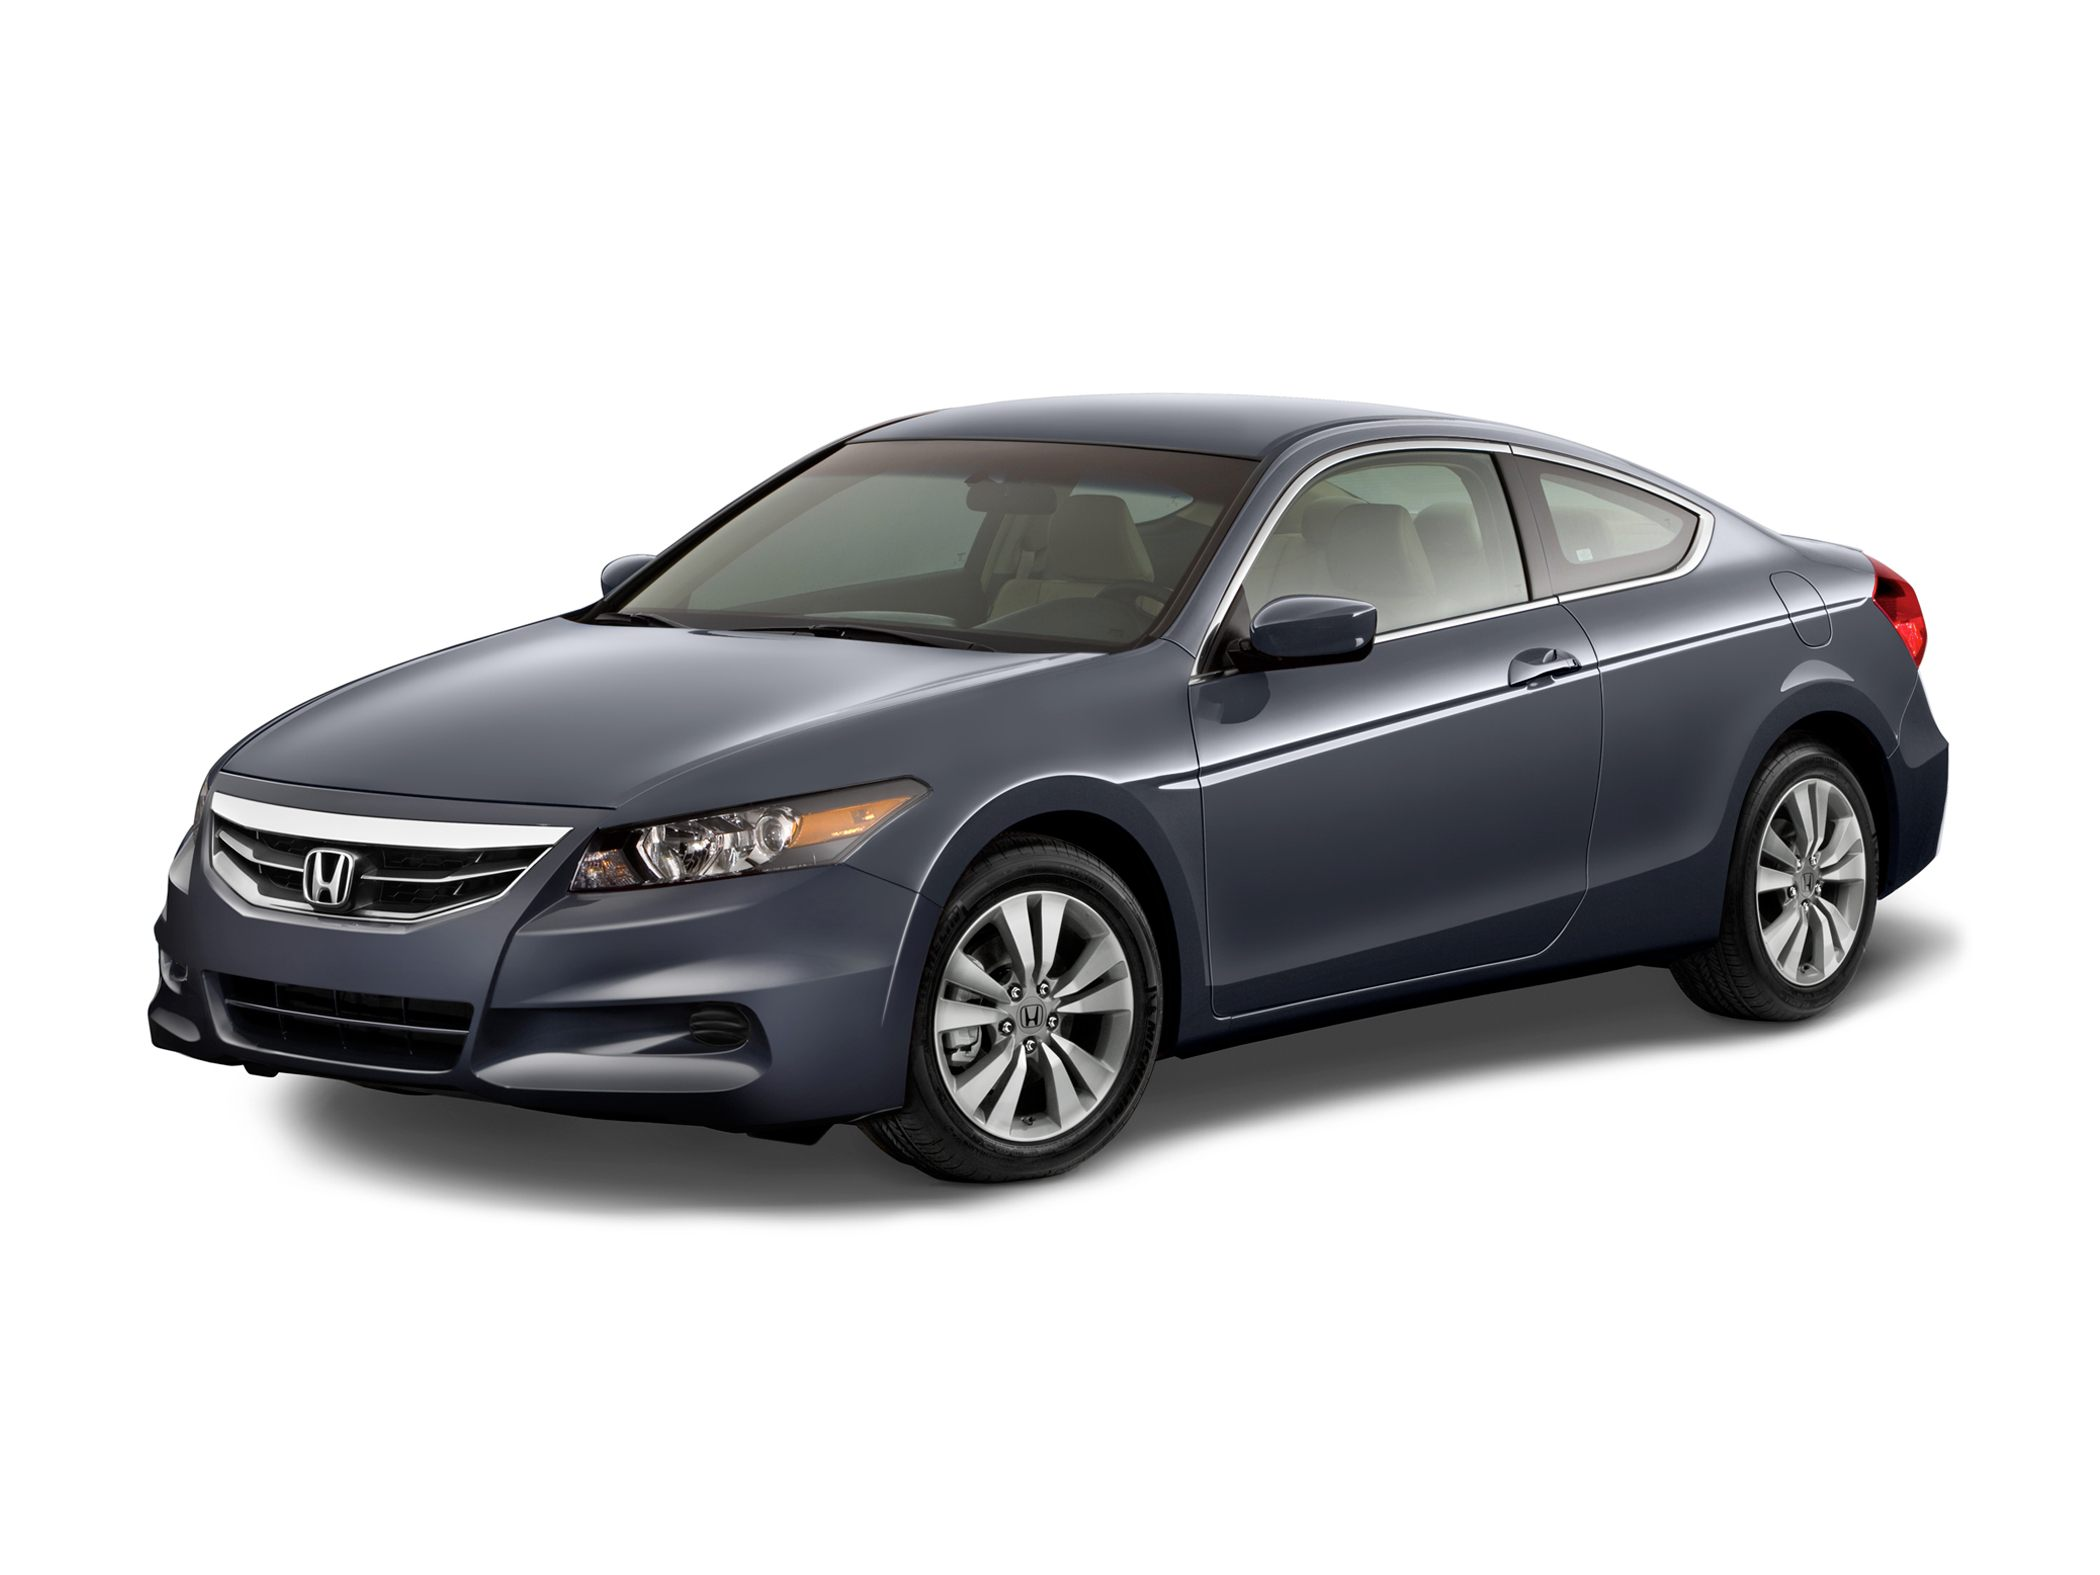 Honda accord 2 4 2011 technical specifications interior for Honda accord 2011 for sale